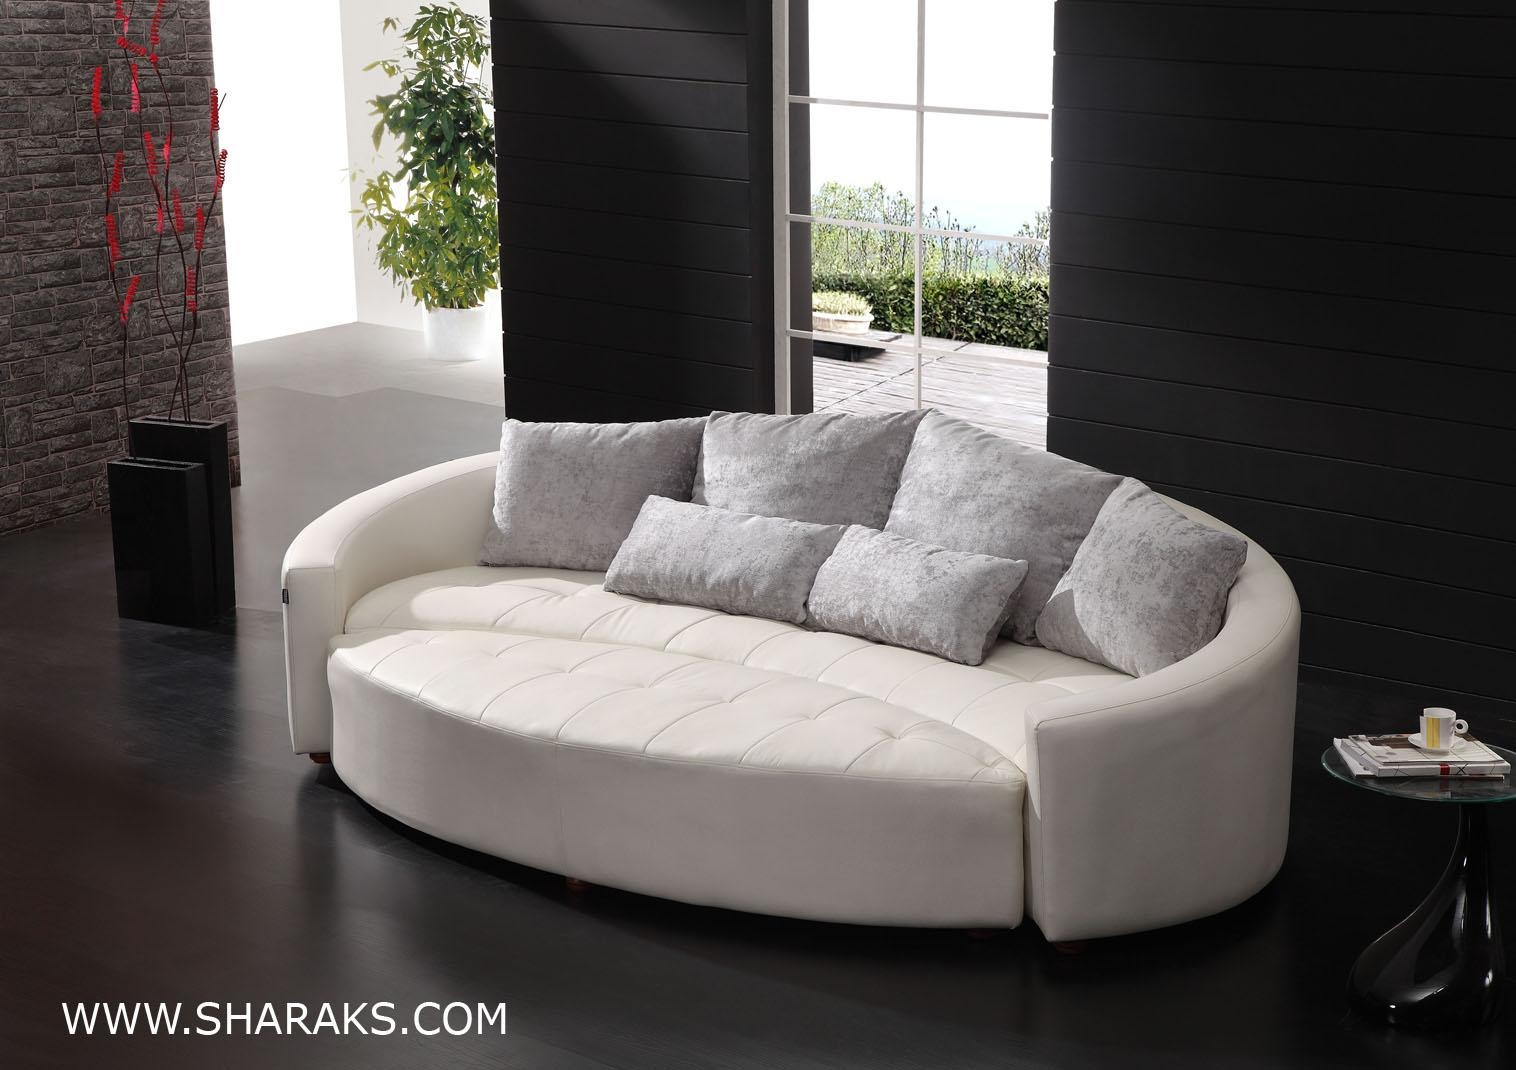 Sofas Center : Shocking Round Sofa Chair Picture Concept Bigrge Throughout Round Sofa Chairs (View 11 of 20)